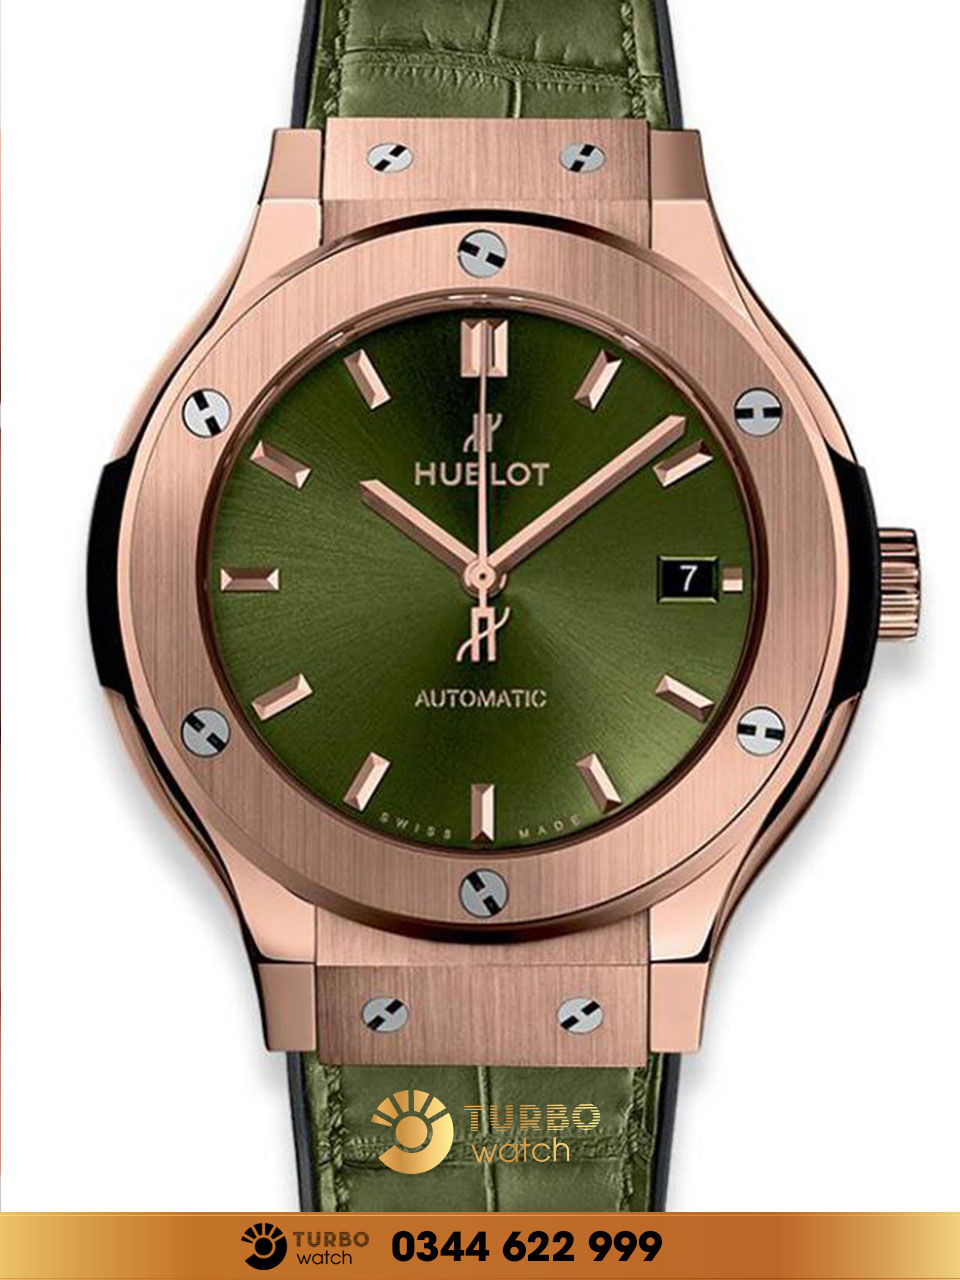 Hublot Classic Fusion King Gold & Green replica 1-1 cao cấp